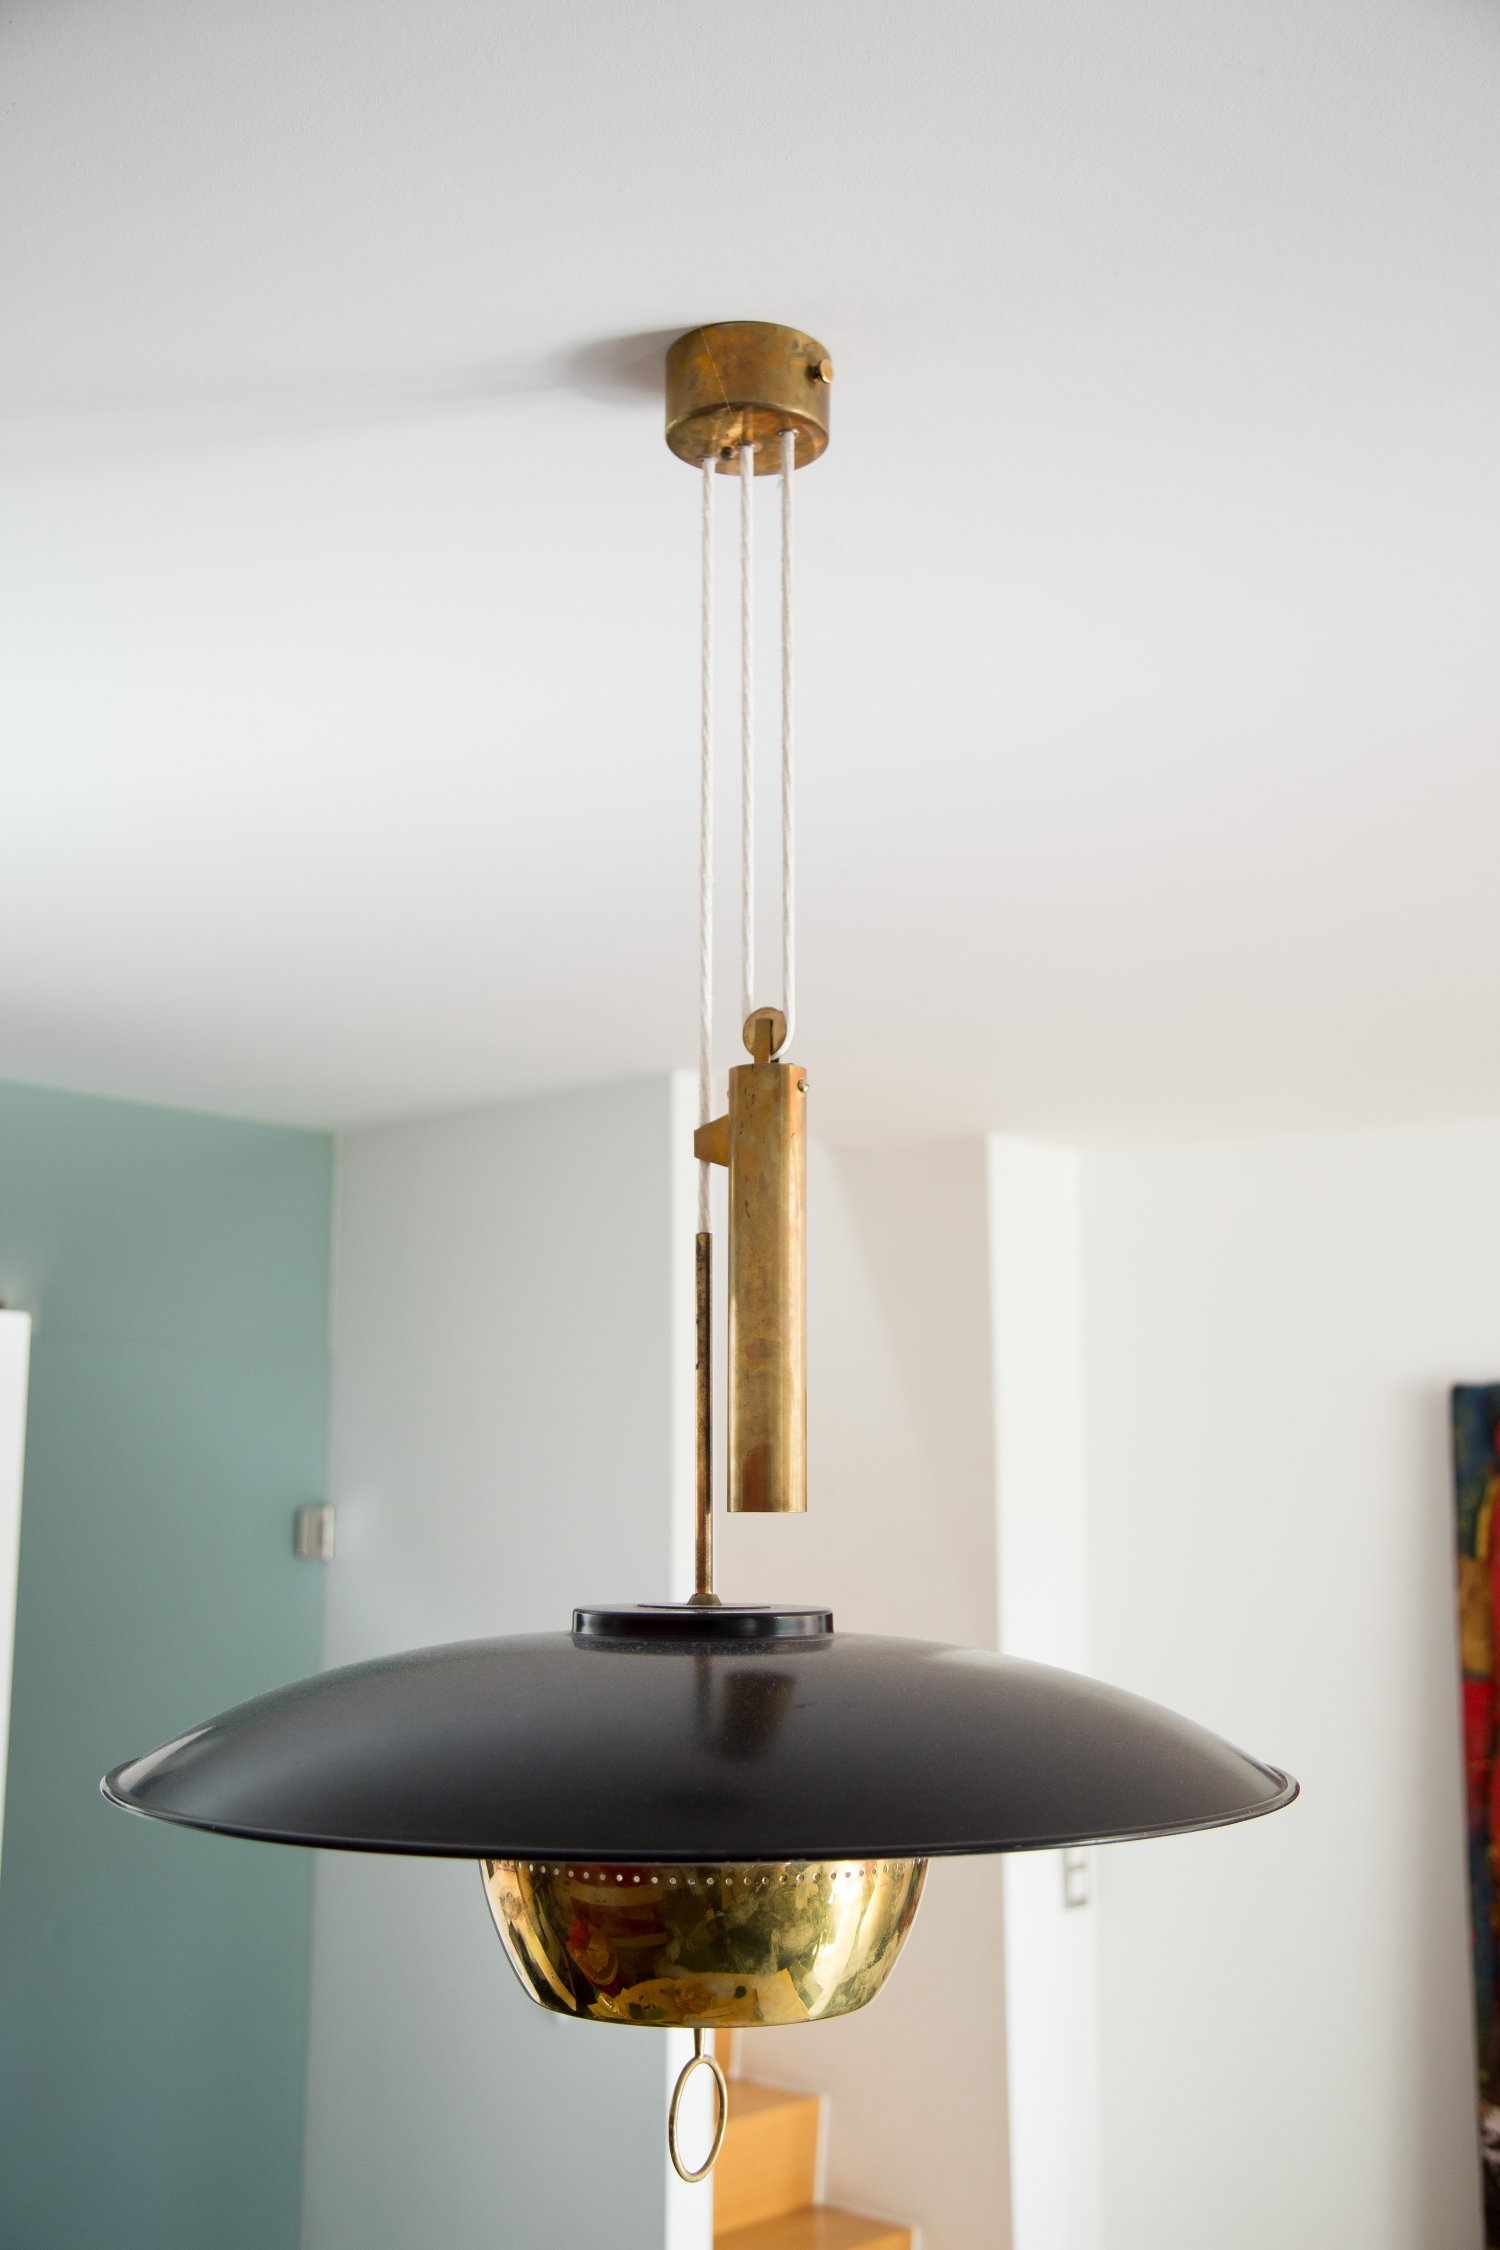 STILNOVO A5011 counterweight lamp by Gaetano Sciolari